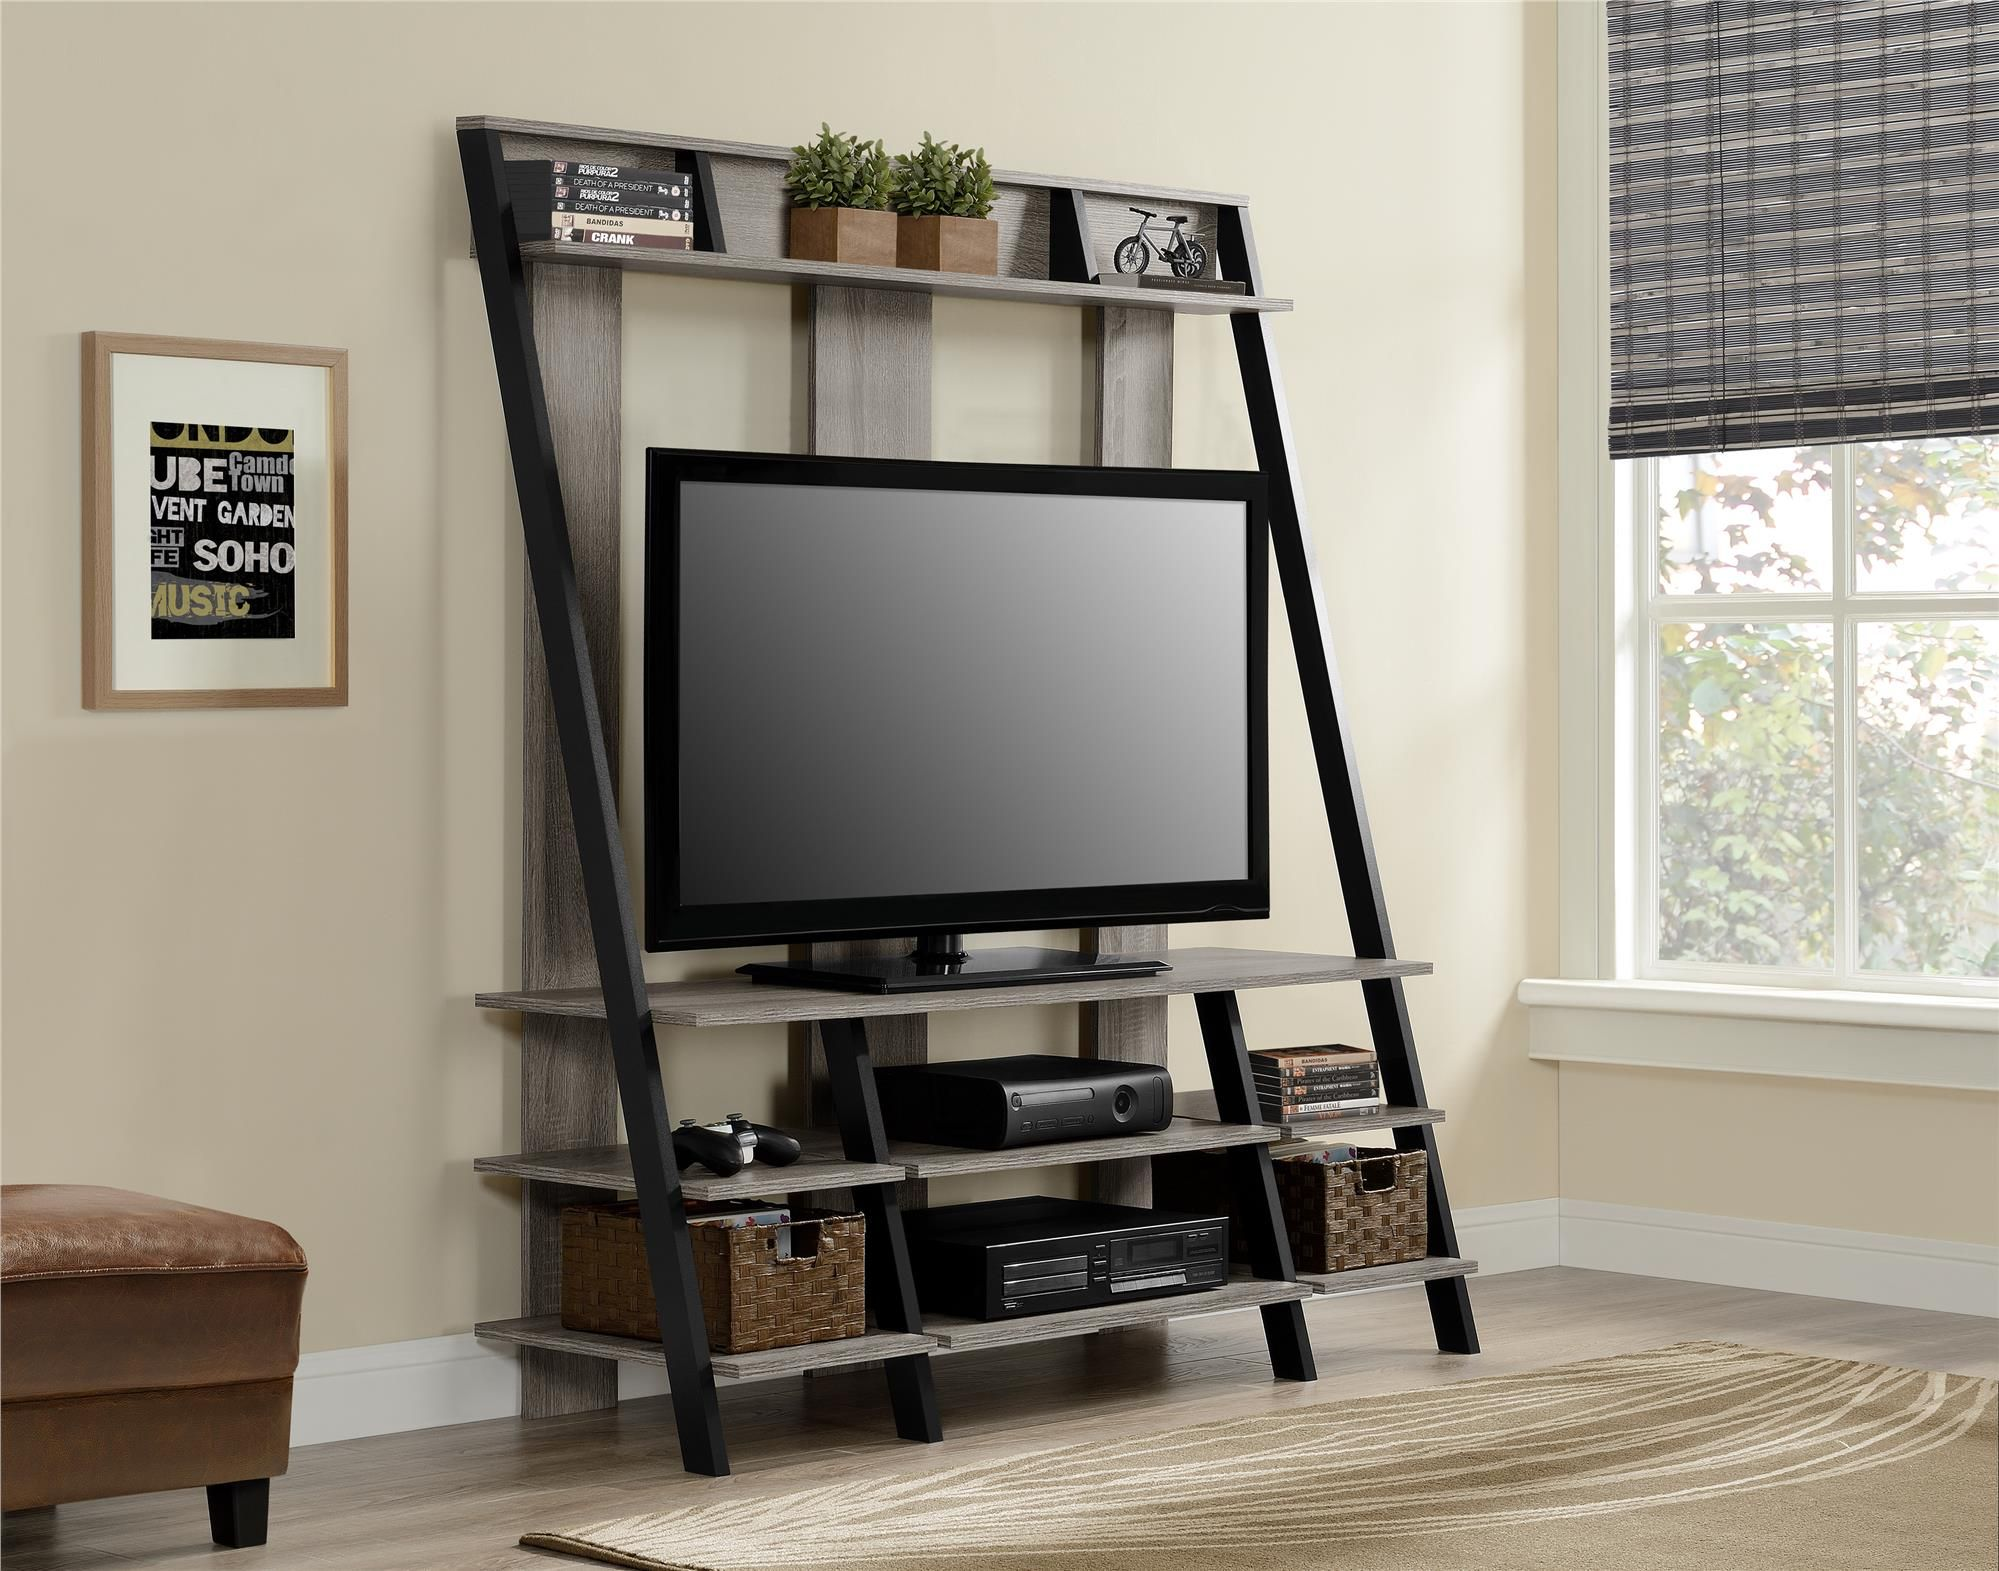 Dorel Home Furnishings Ladder Style Sonoma Oak Home Entertainment Center, Beige & Tan